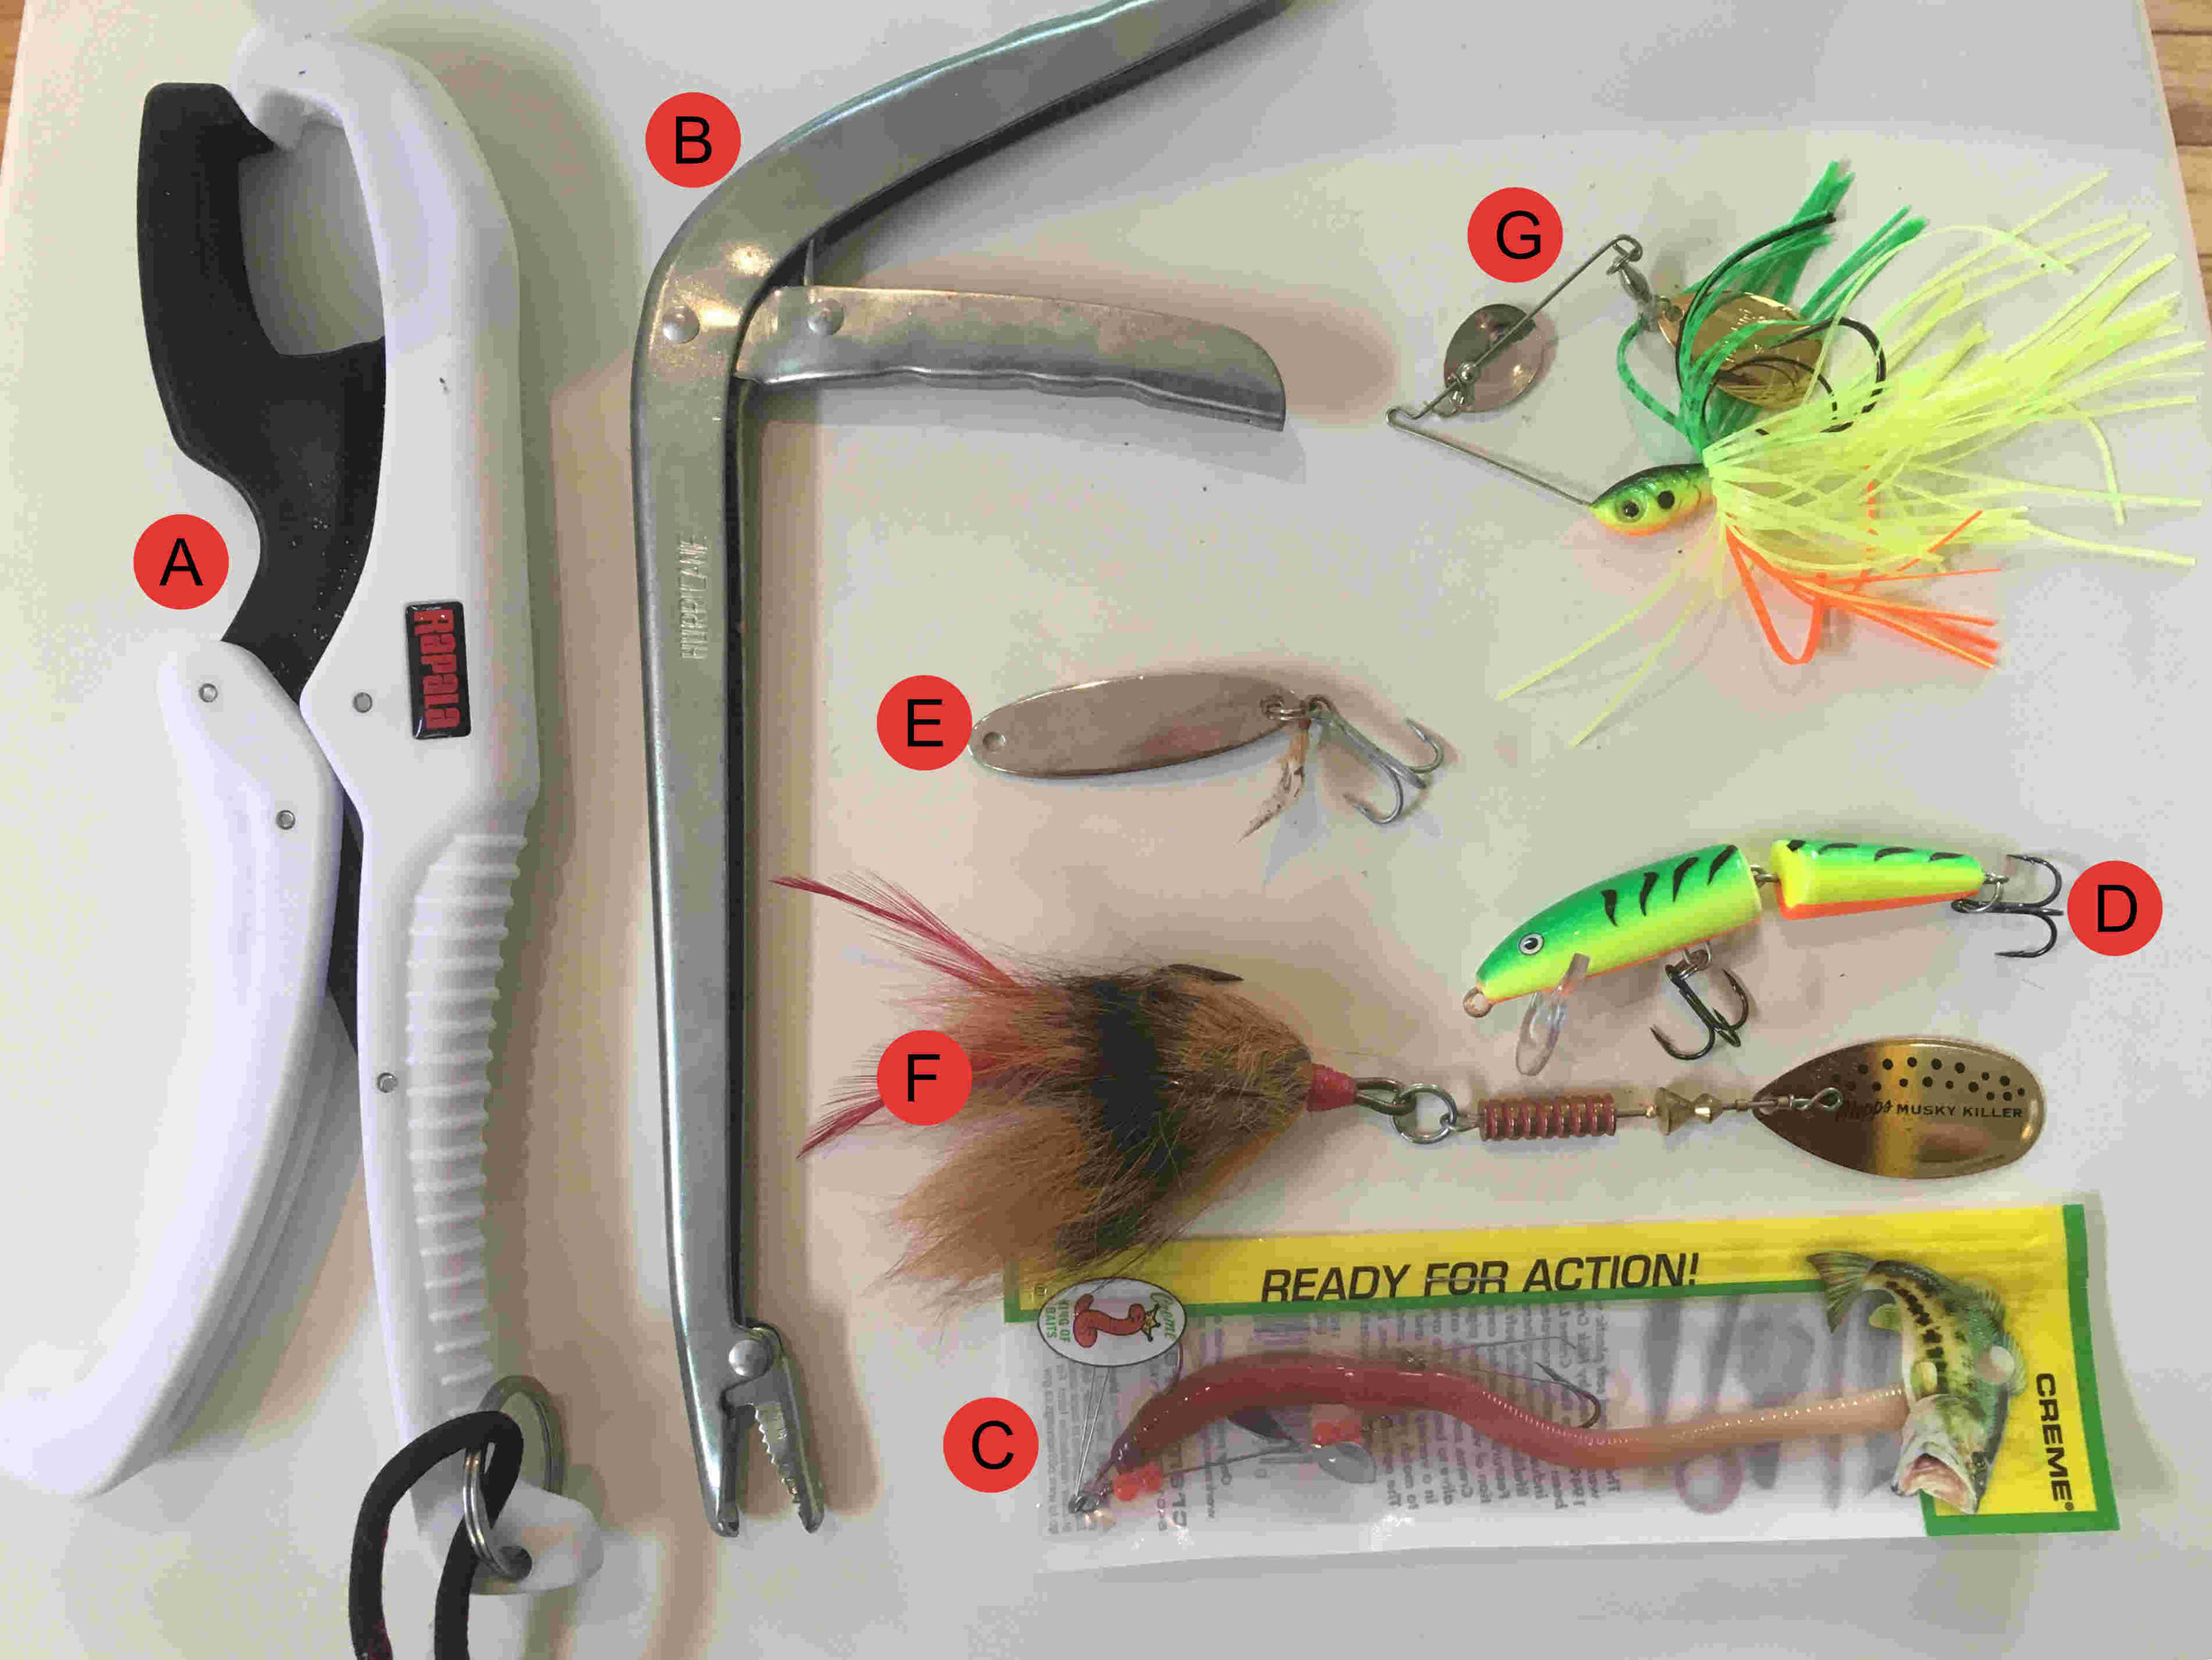 Sometimes fishing gear choices are subjective, so here are my personal picks.